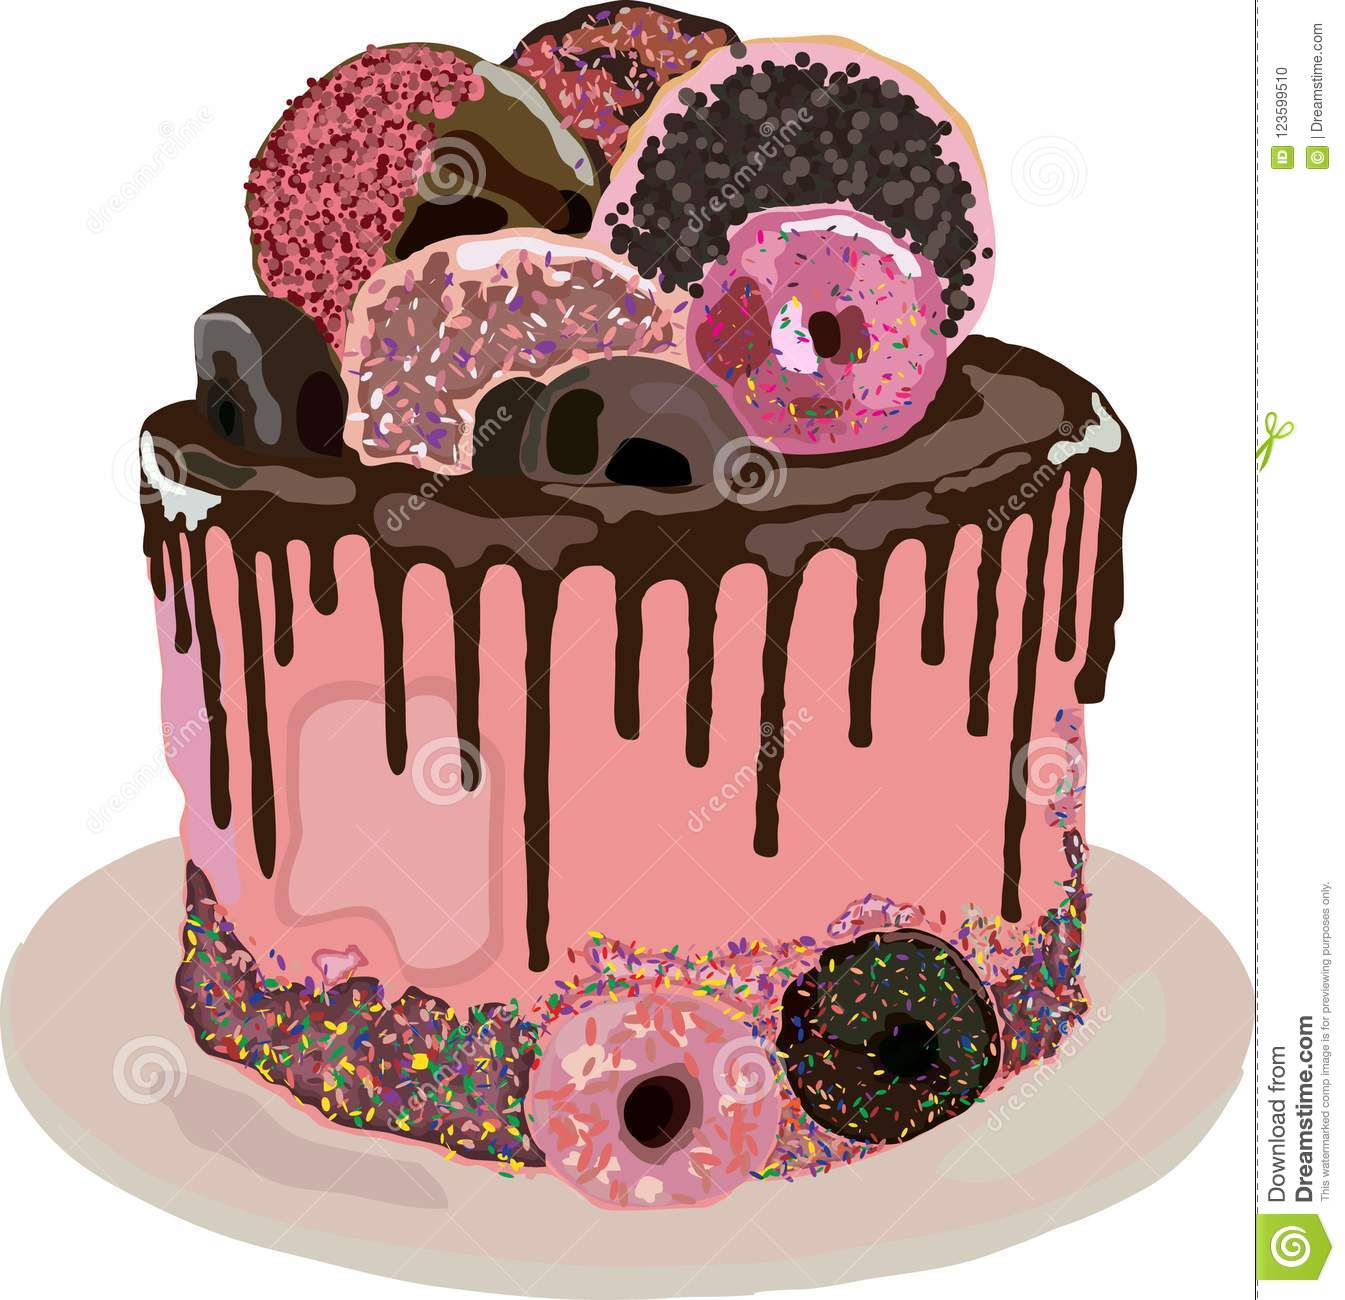 Birthday Cake With Donuts